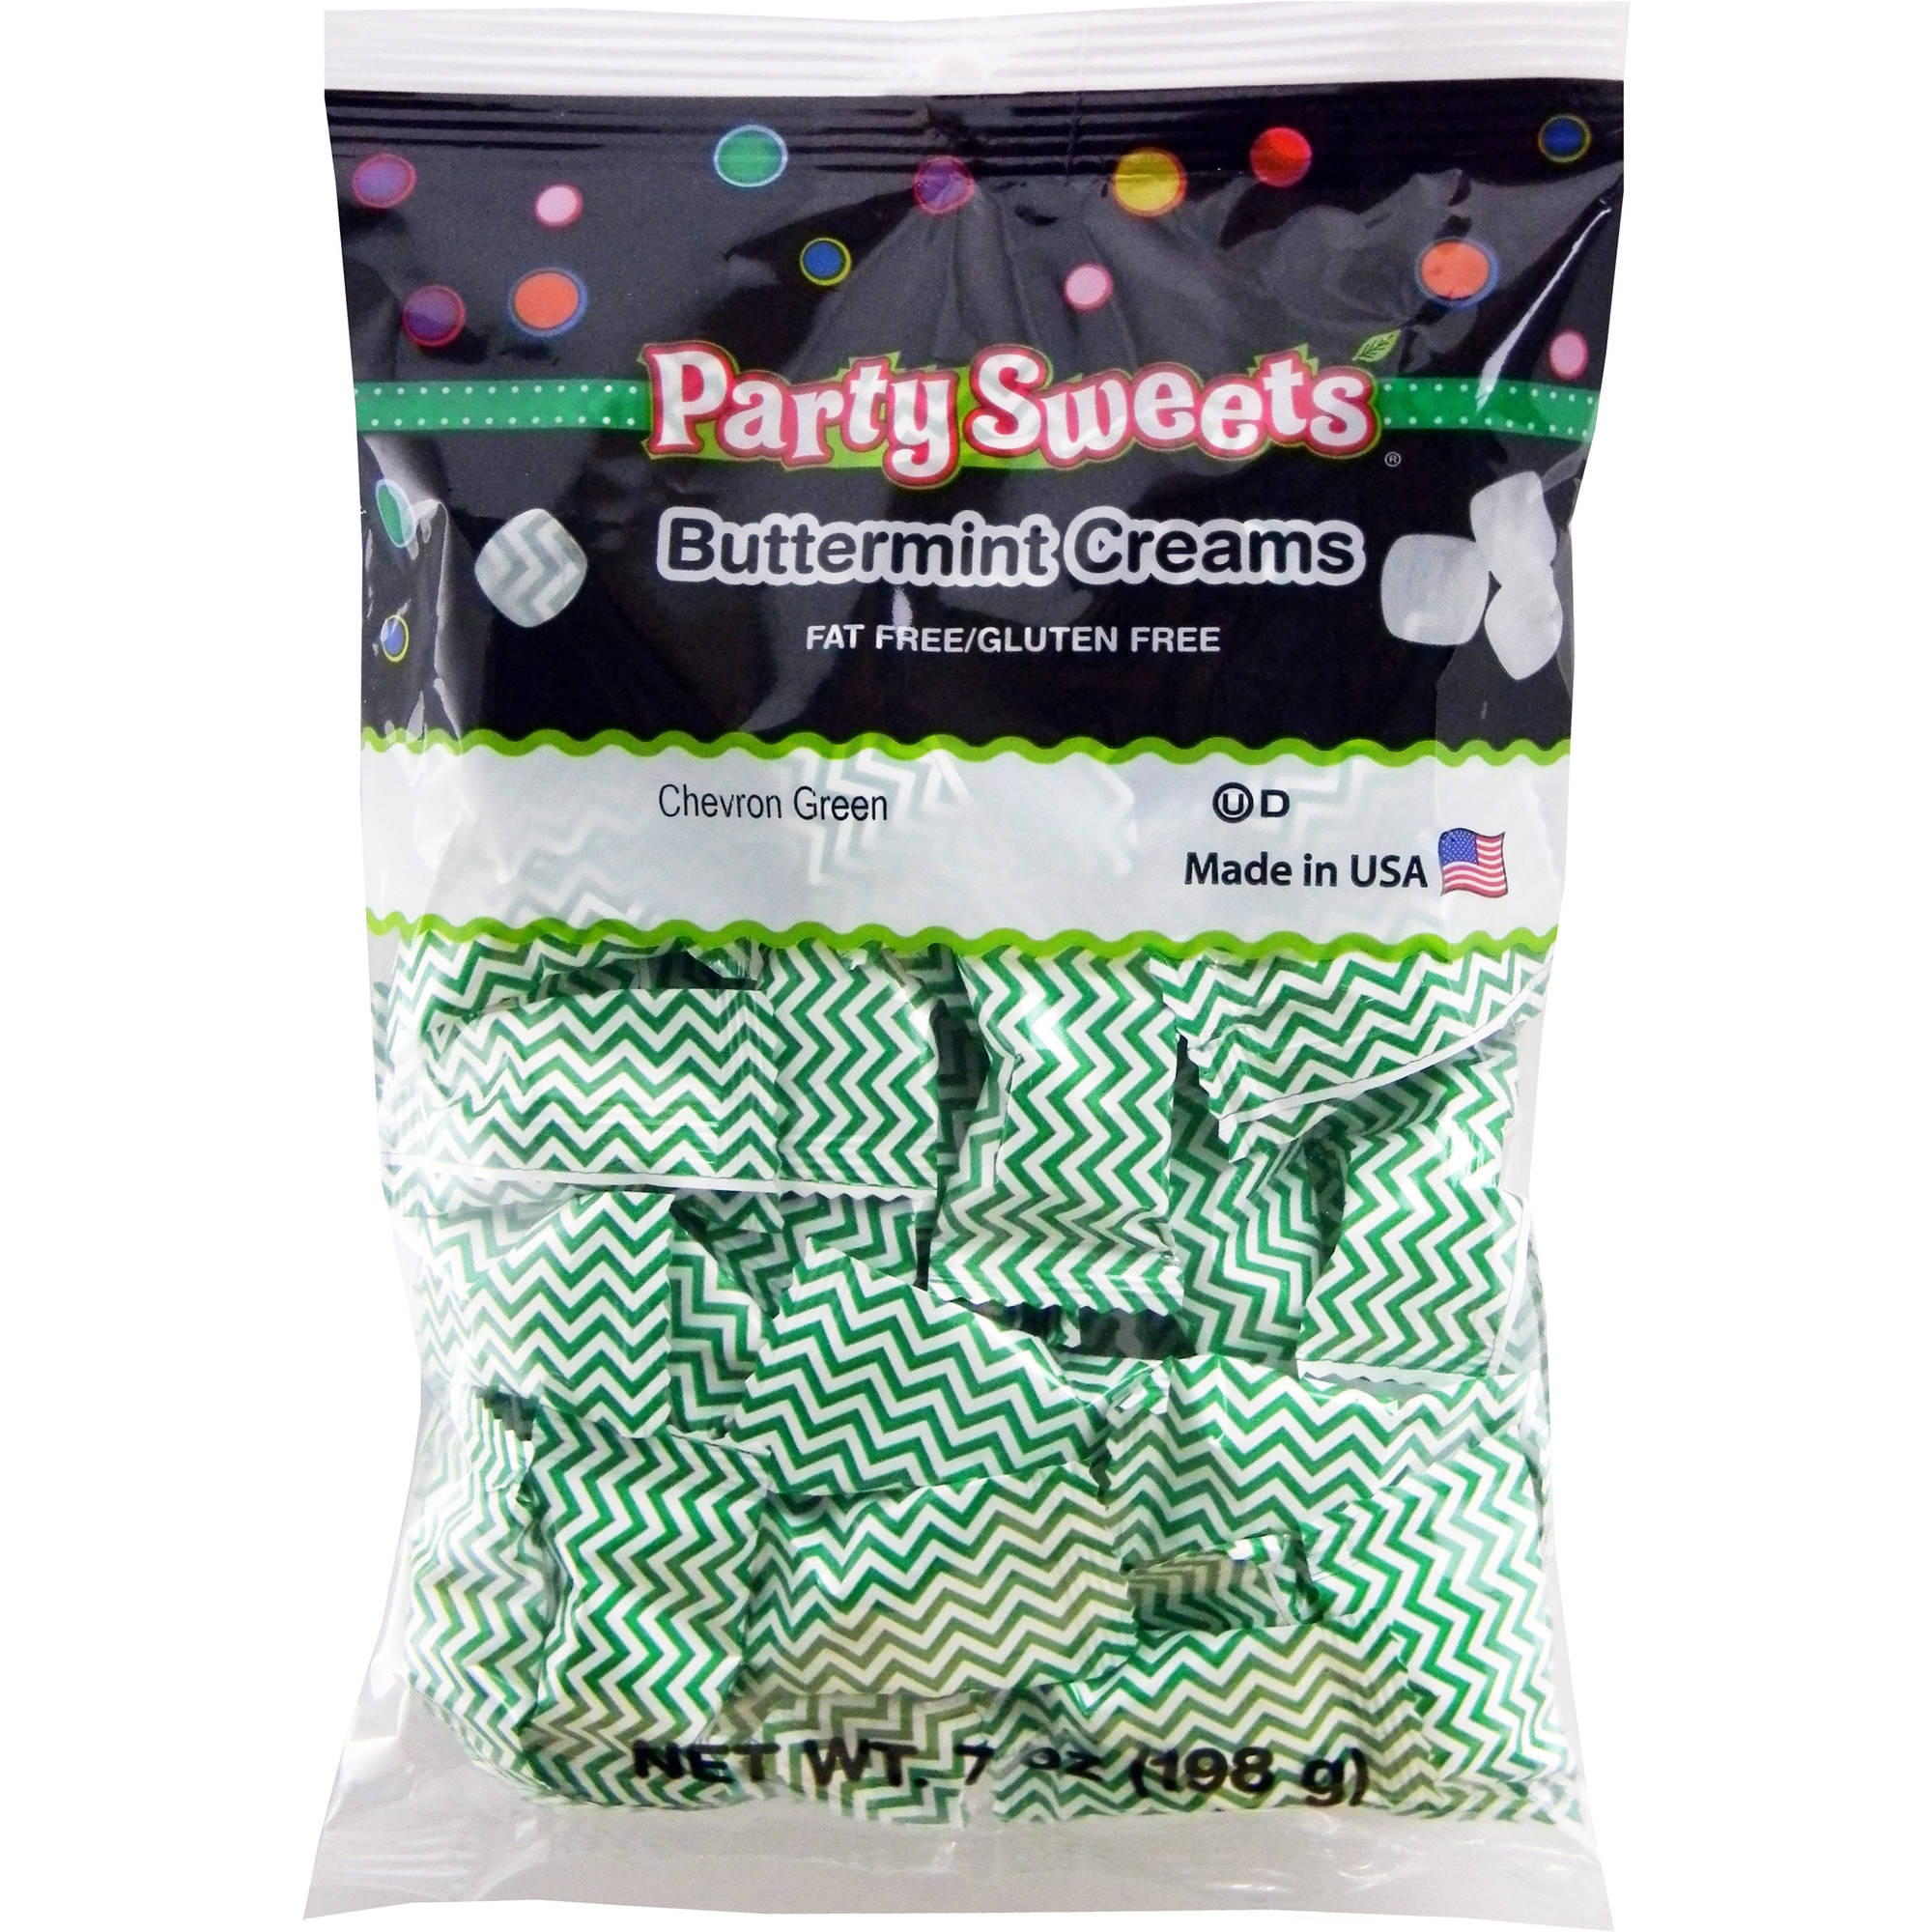 Party Sweets Chevron Green Buttermint Creams Candy, 7 oz